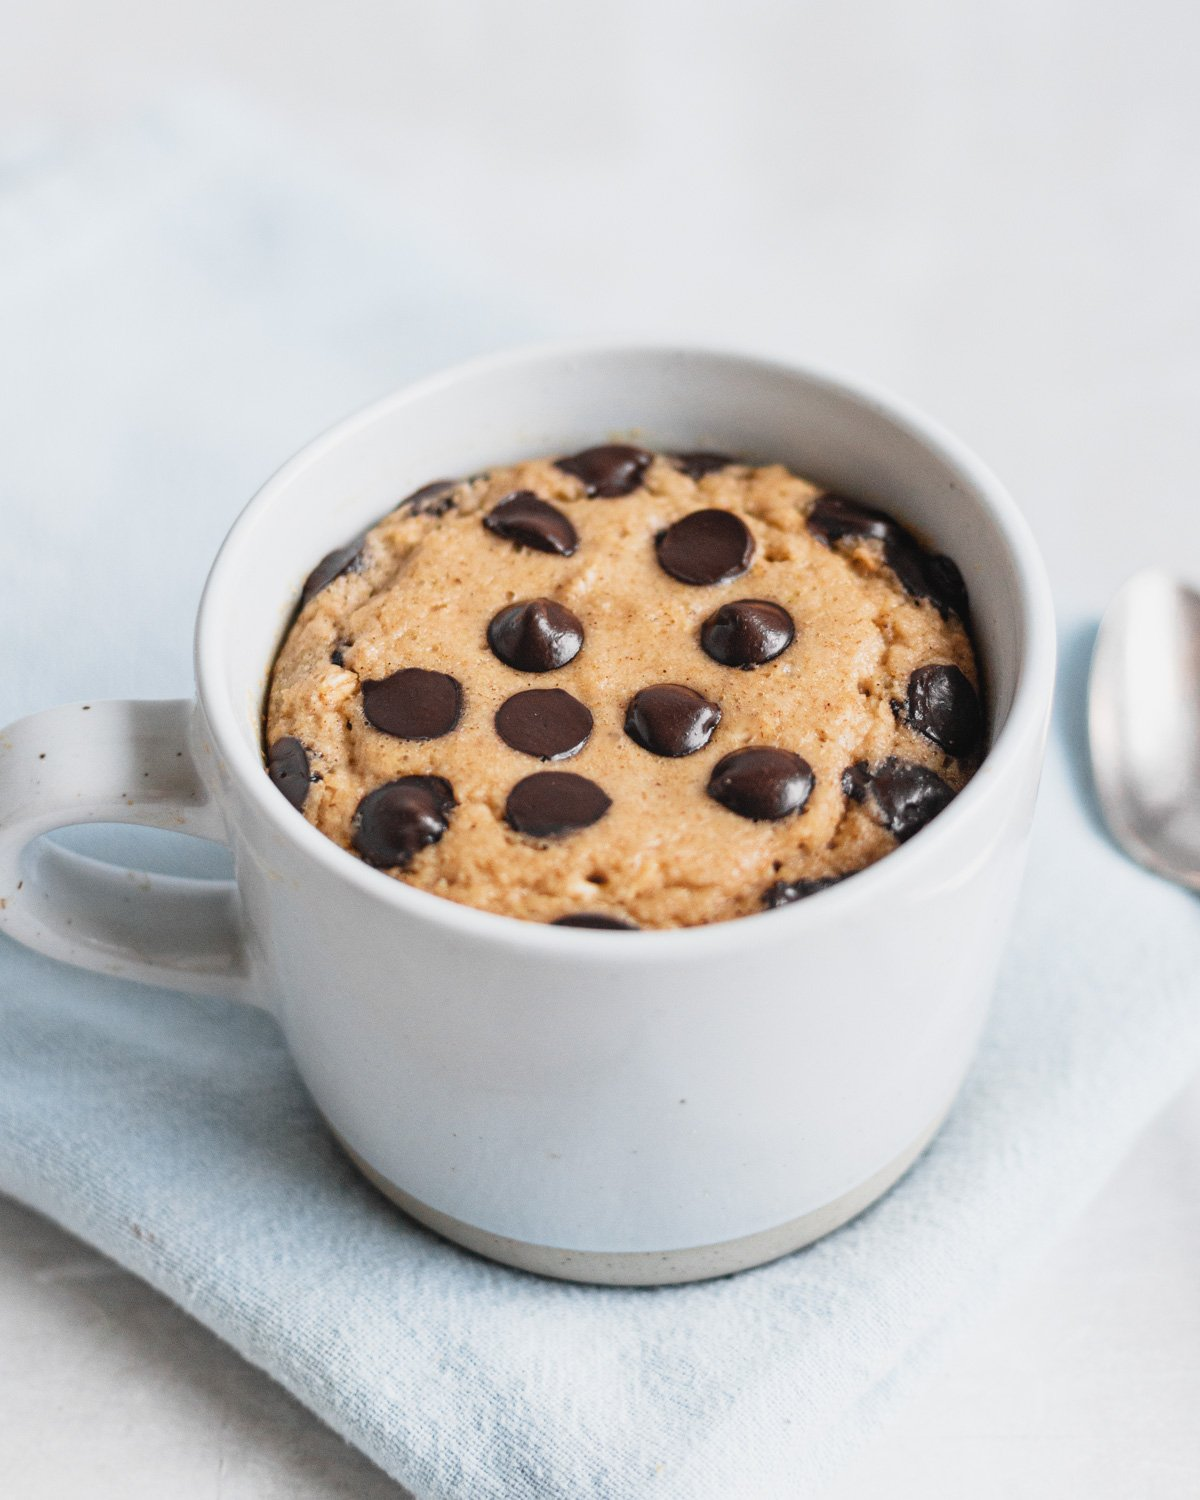 single serve cookie dough baked oatmeal in a white mug, on light grey backdrop with spoon and blue linen napkin